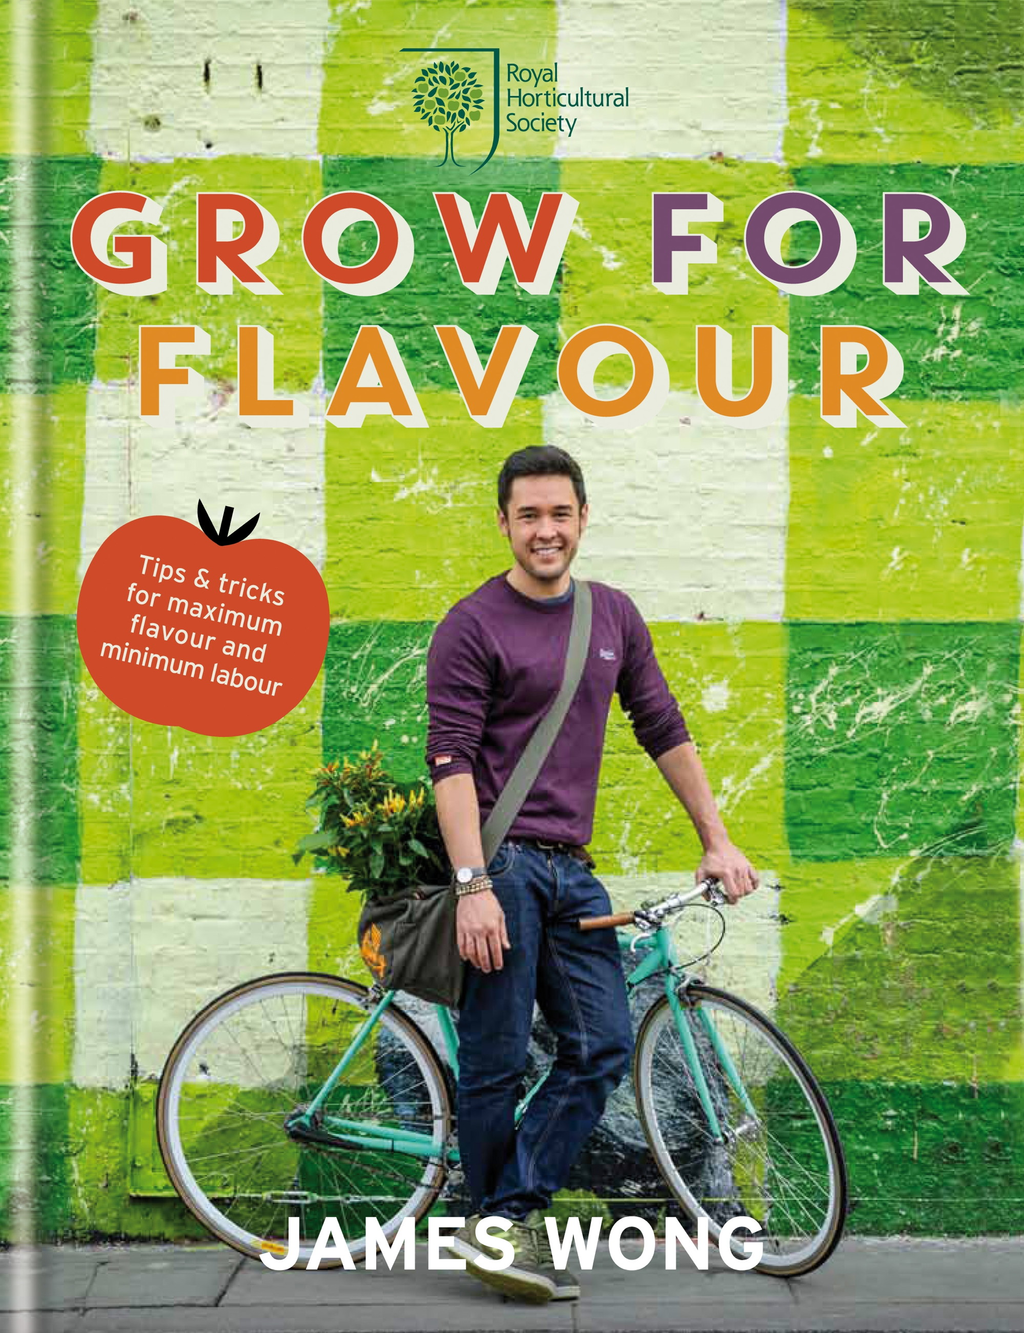 RHS Grow for Flavour Brand-new tips & tricks to supercharge the flavour of homegrown harvests